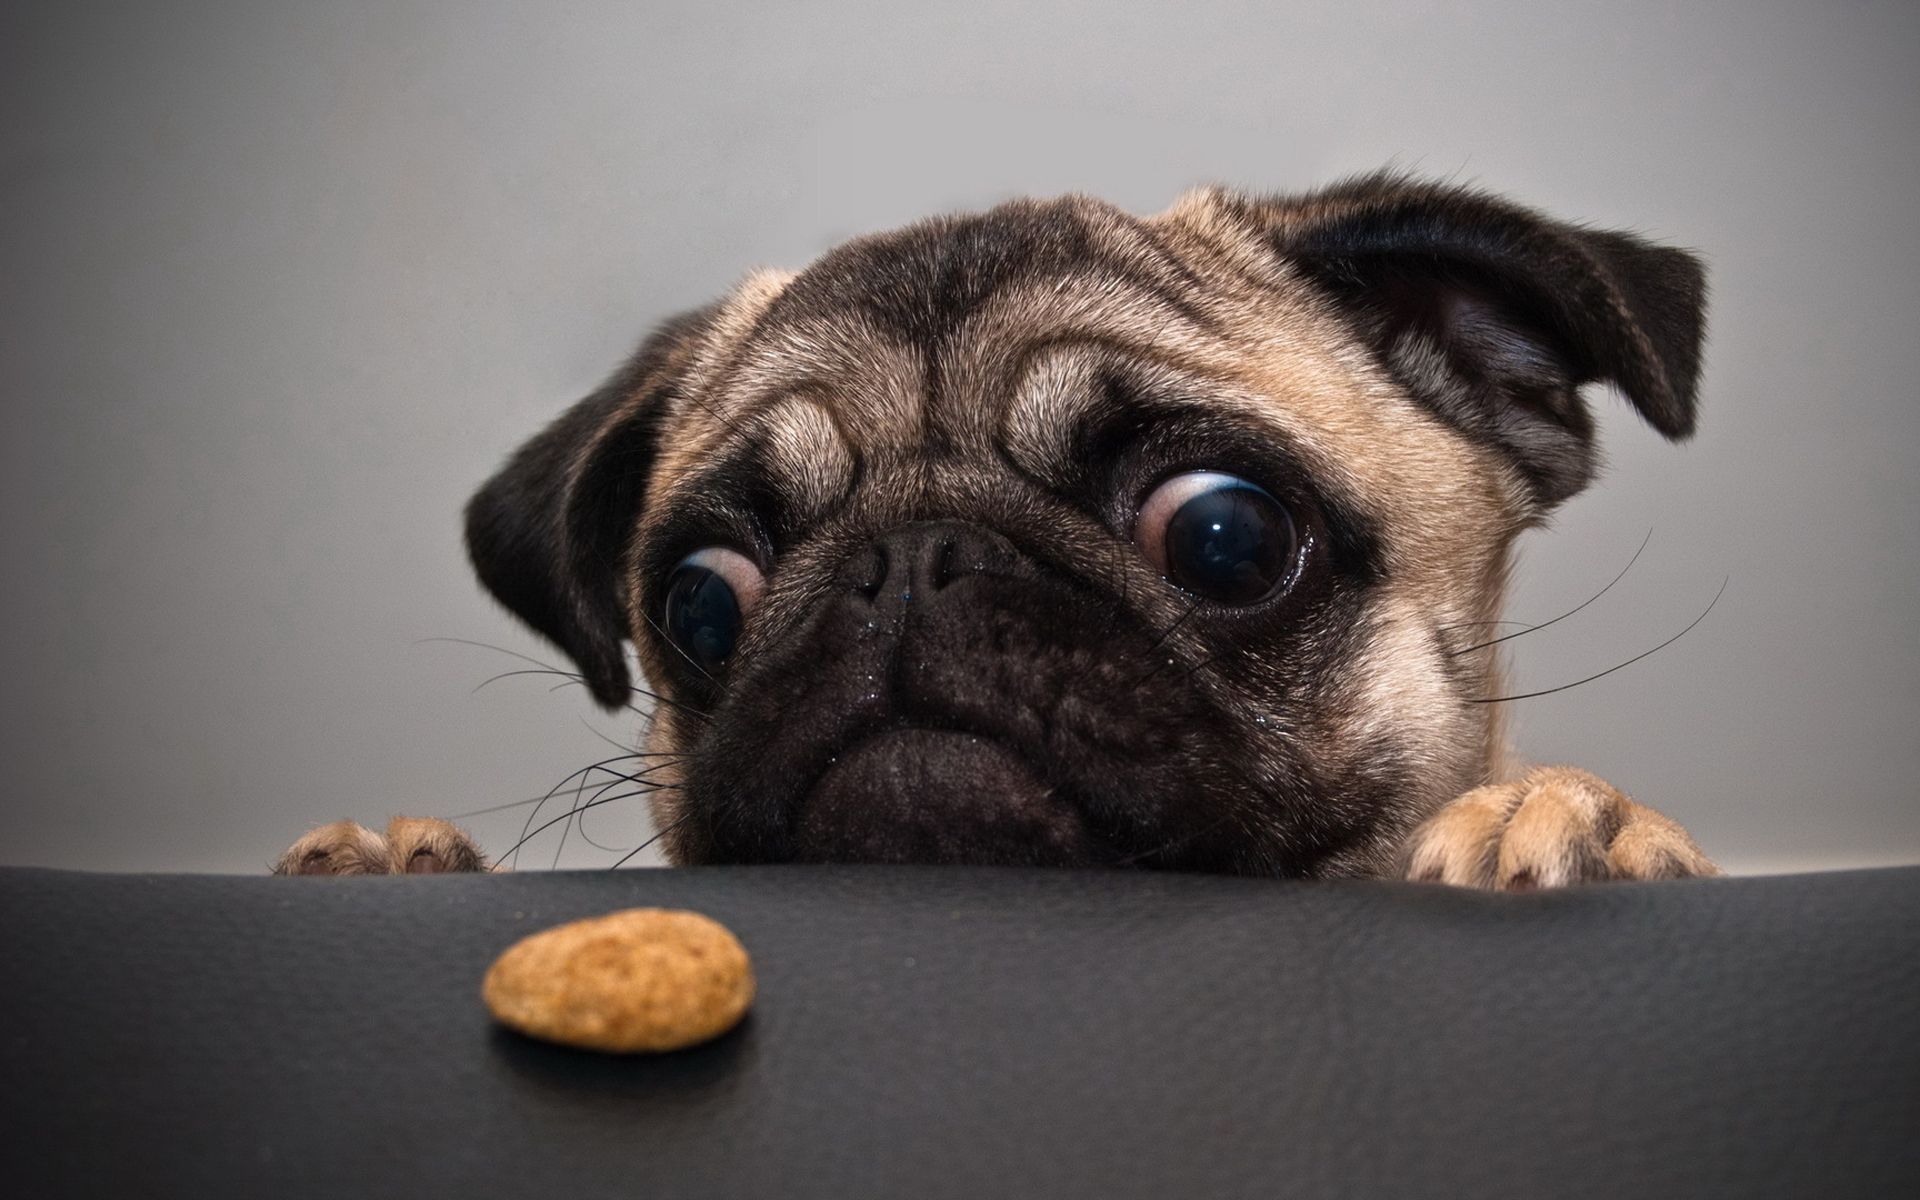 Funny pug wallpaper screensaver background pug wallpaper - Free funny animal screensavers ...